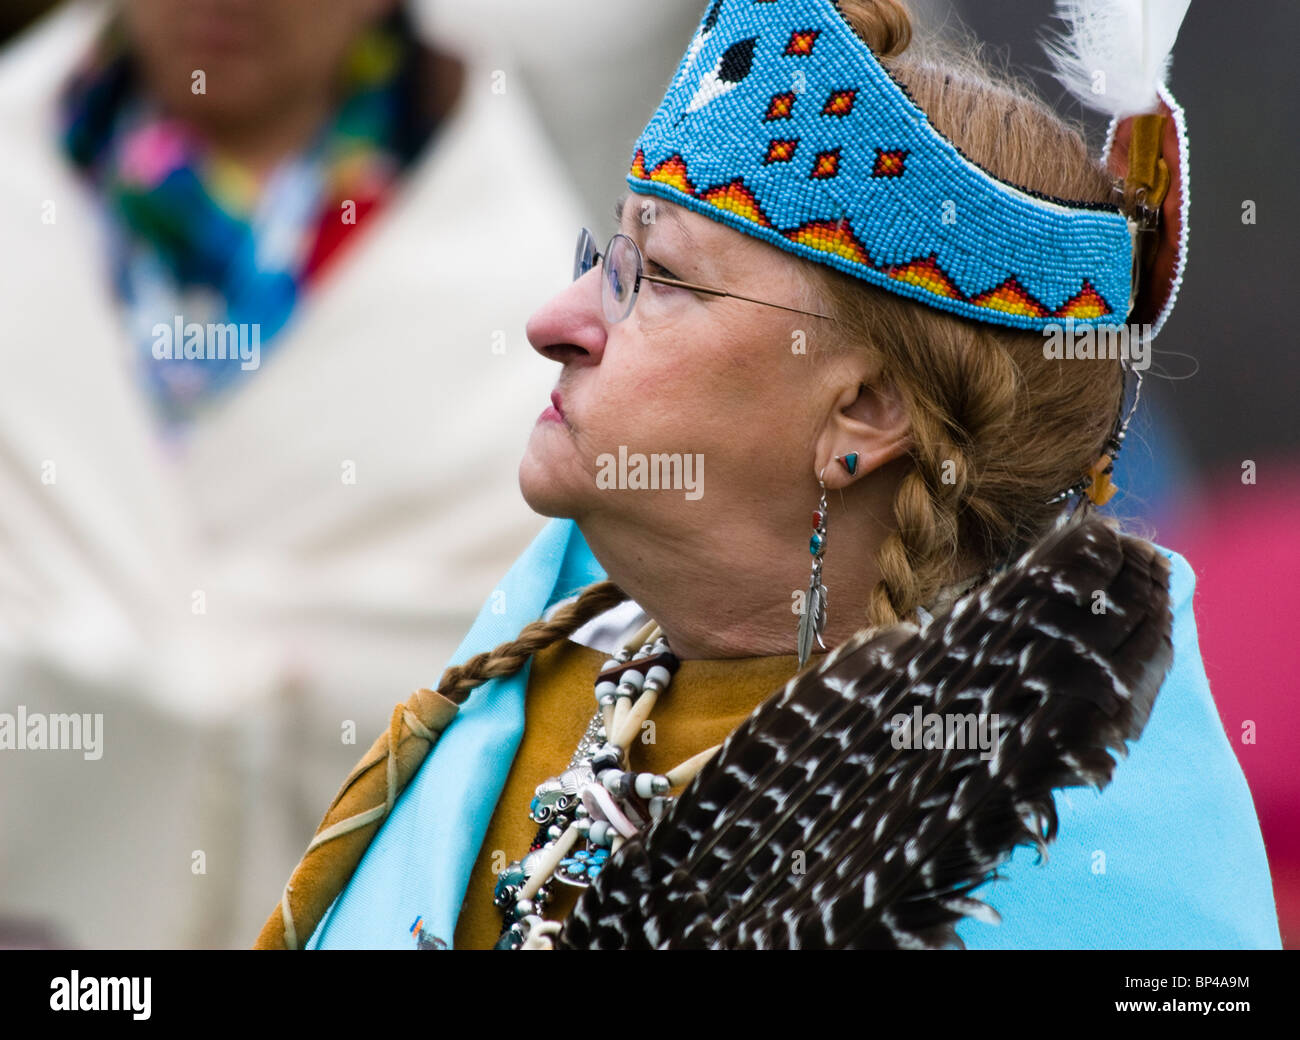 A Native American dresses in full traditional regalia at the Healing Horse Spirit PowWow in Mt. Airy, Maryland. - Stock Image